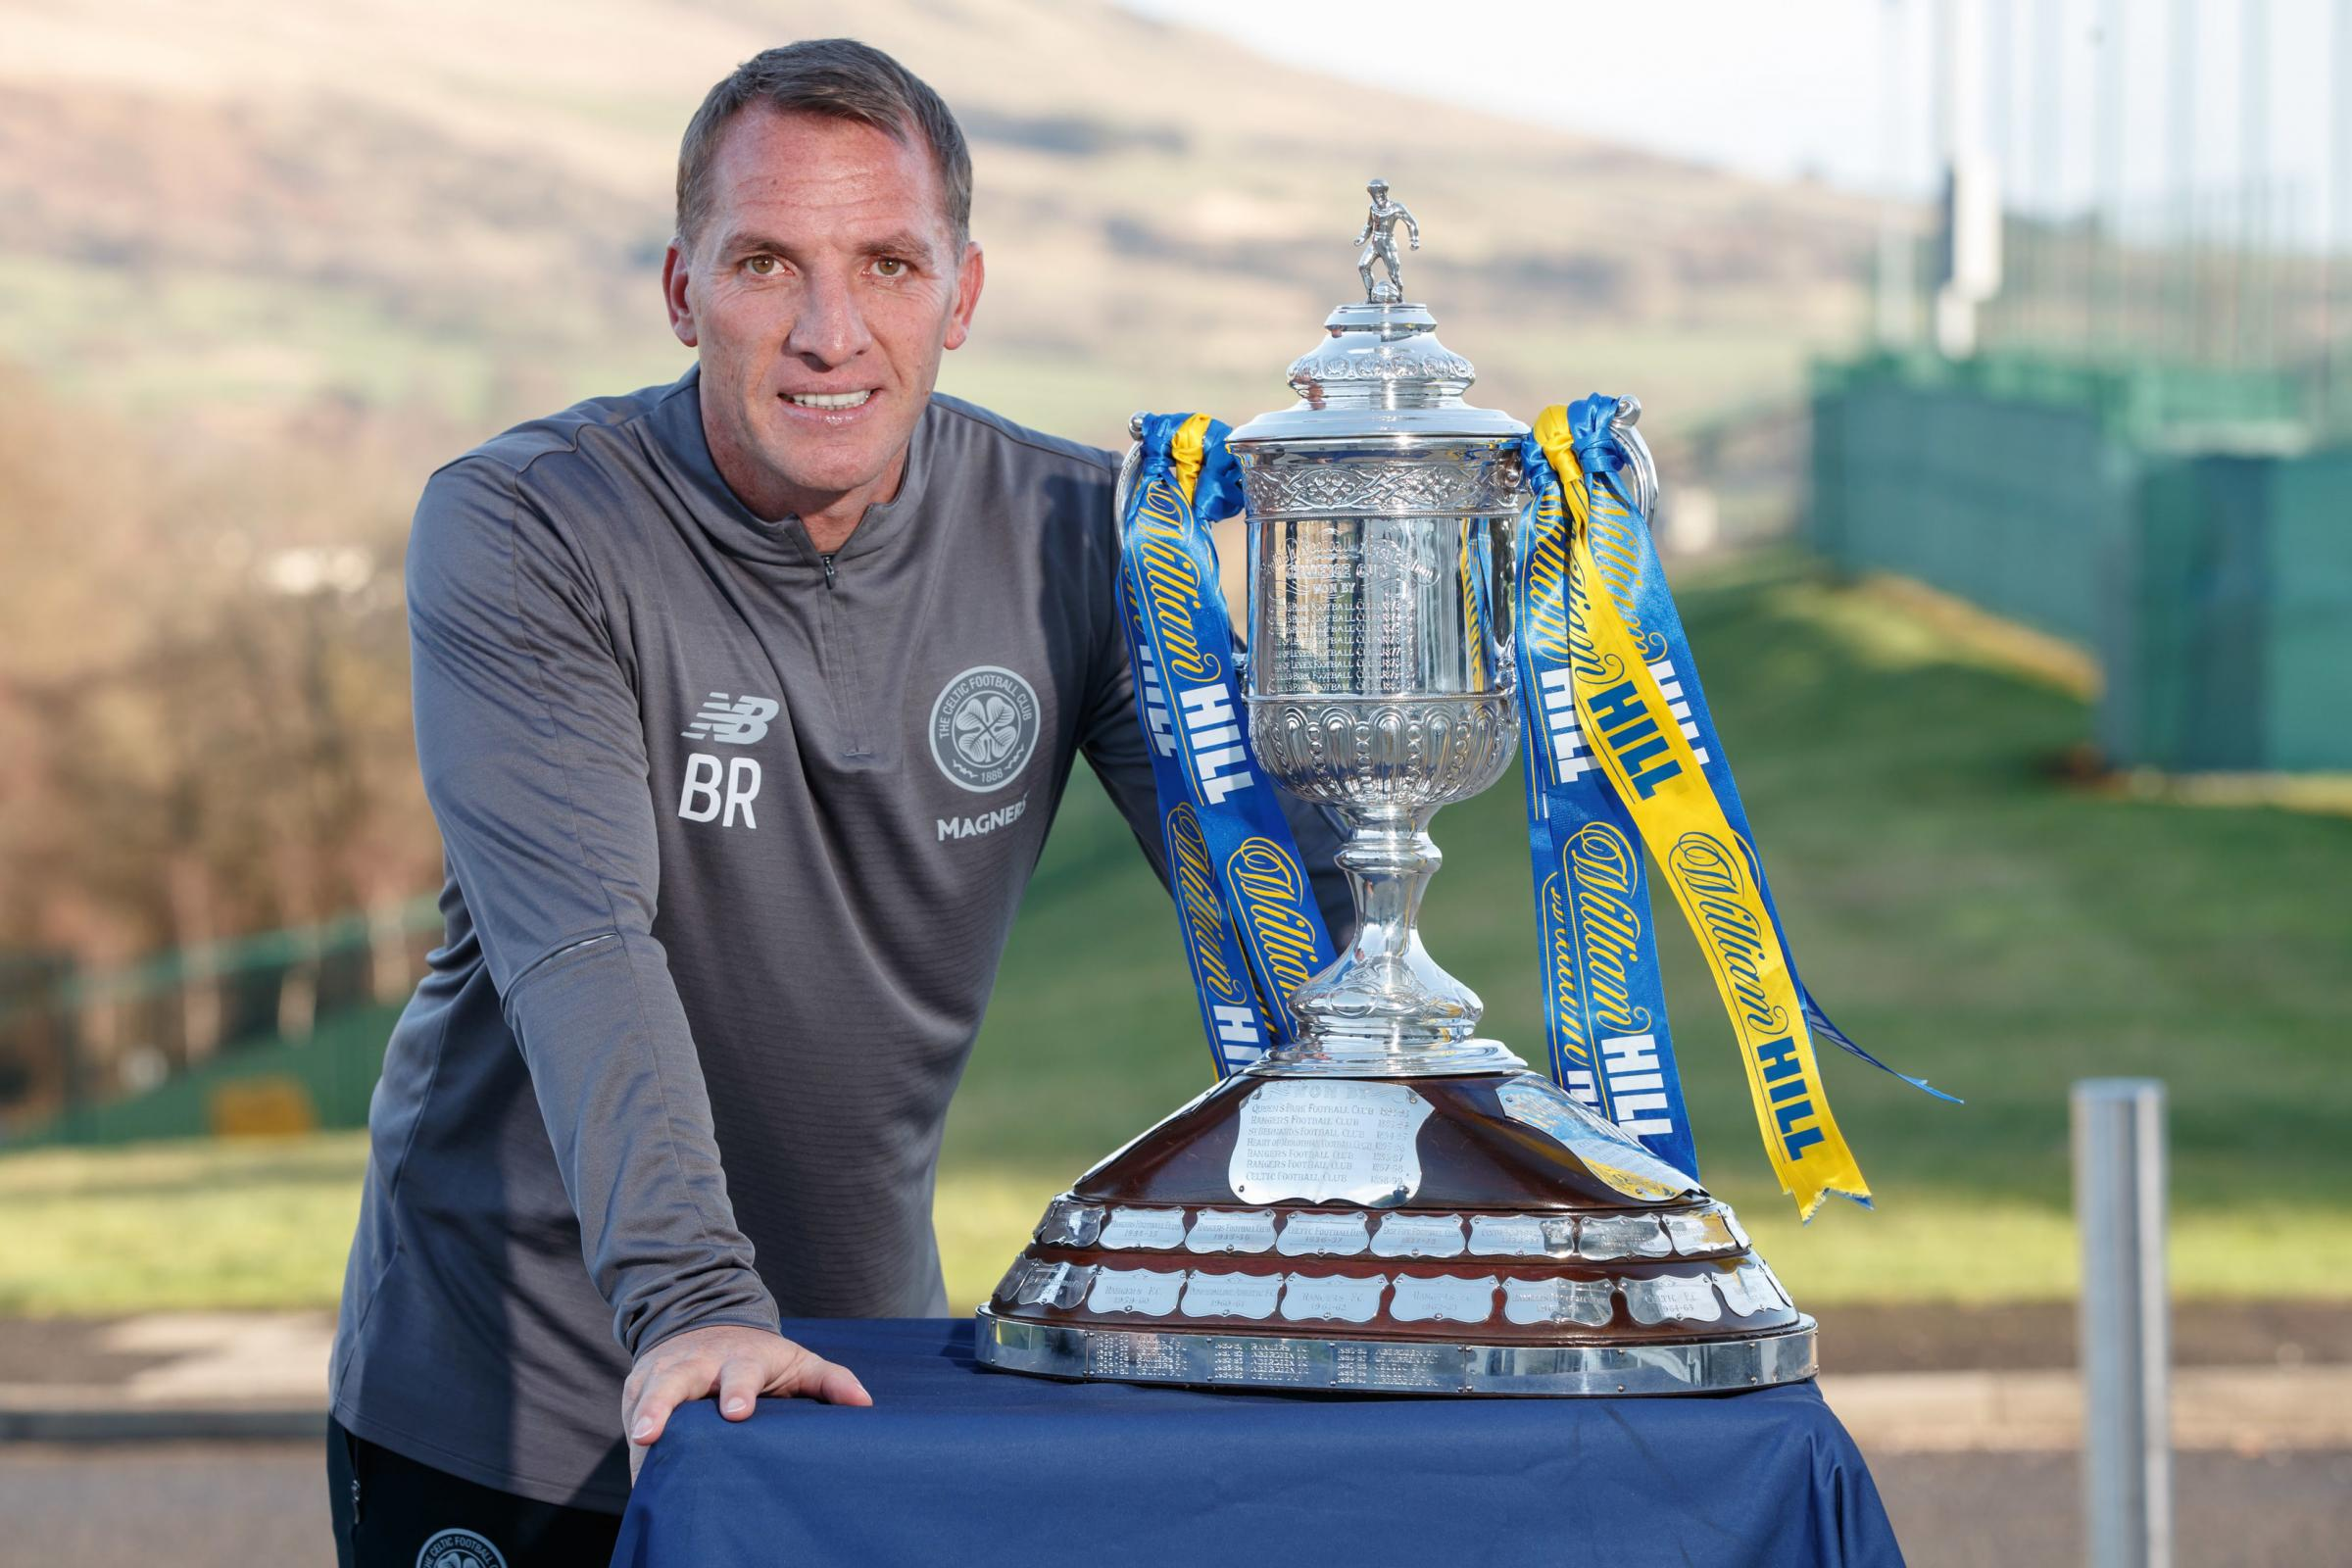 Brendan Rodgers: We've had drones over Celtic training at Lennoxtown - I don't think spygate is unsporting